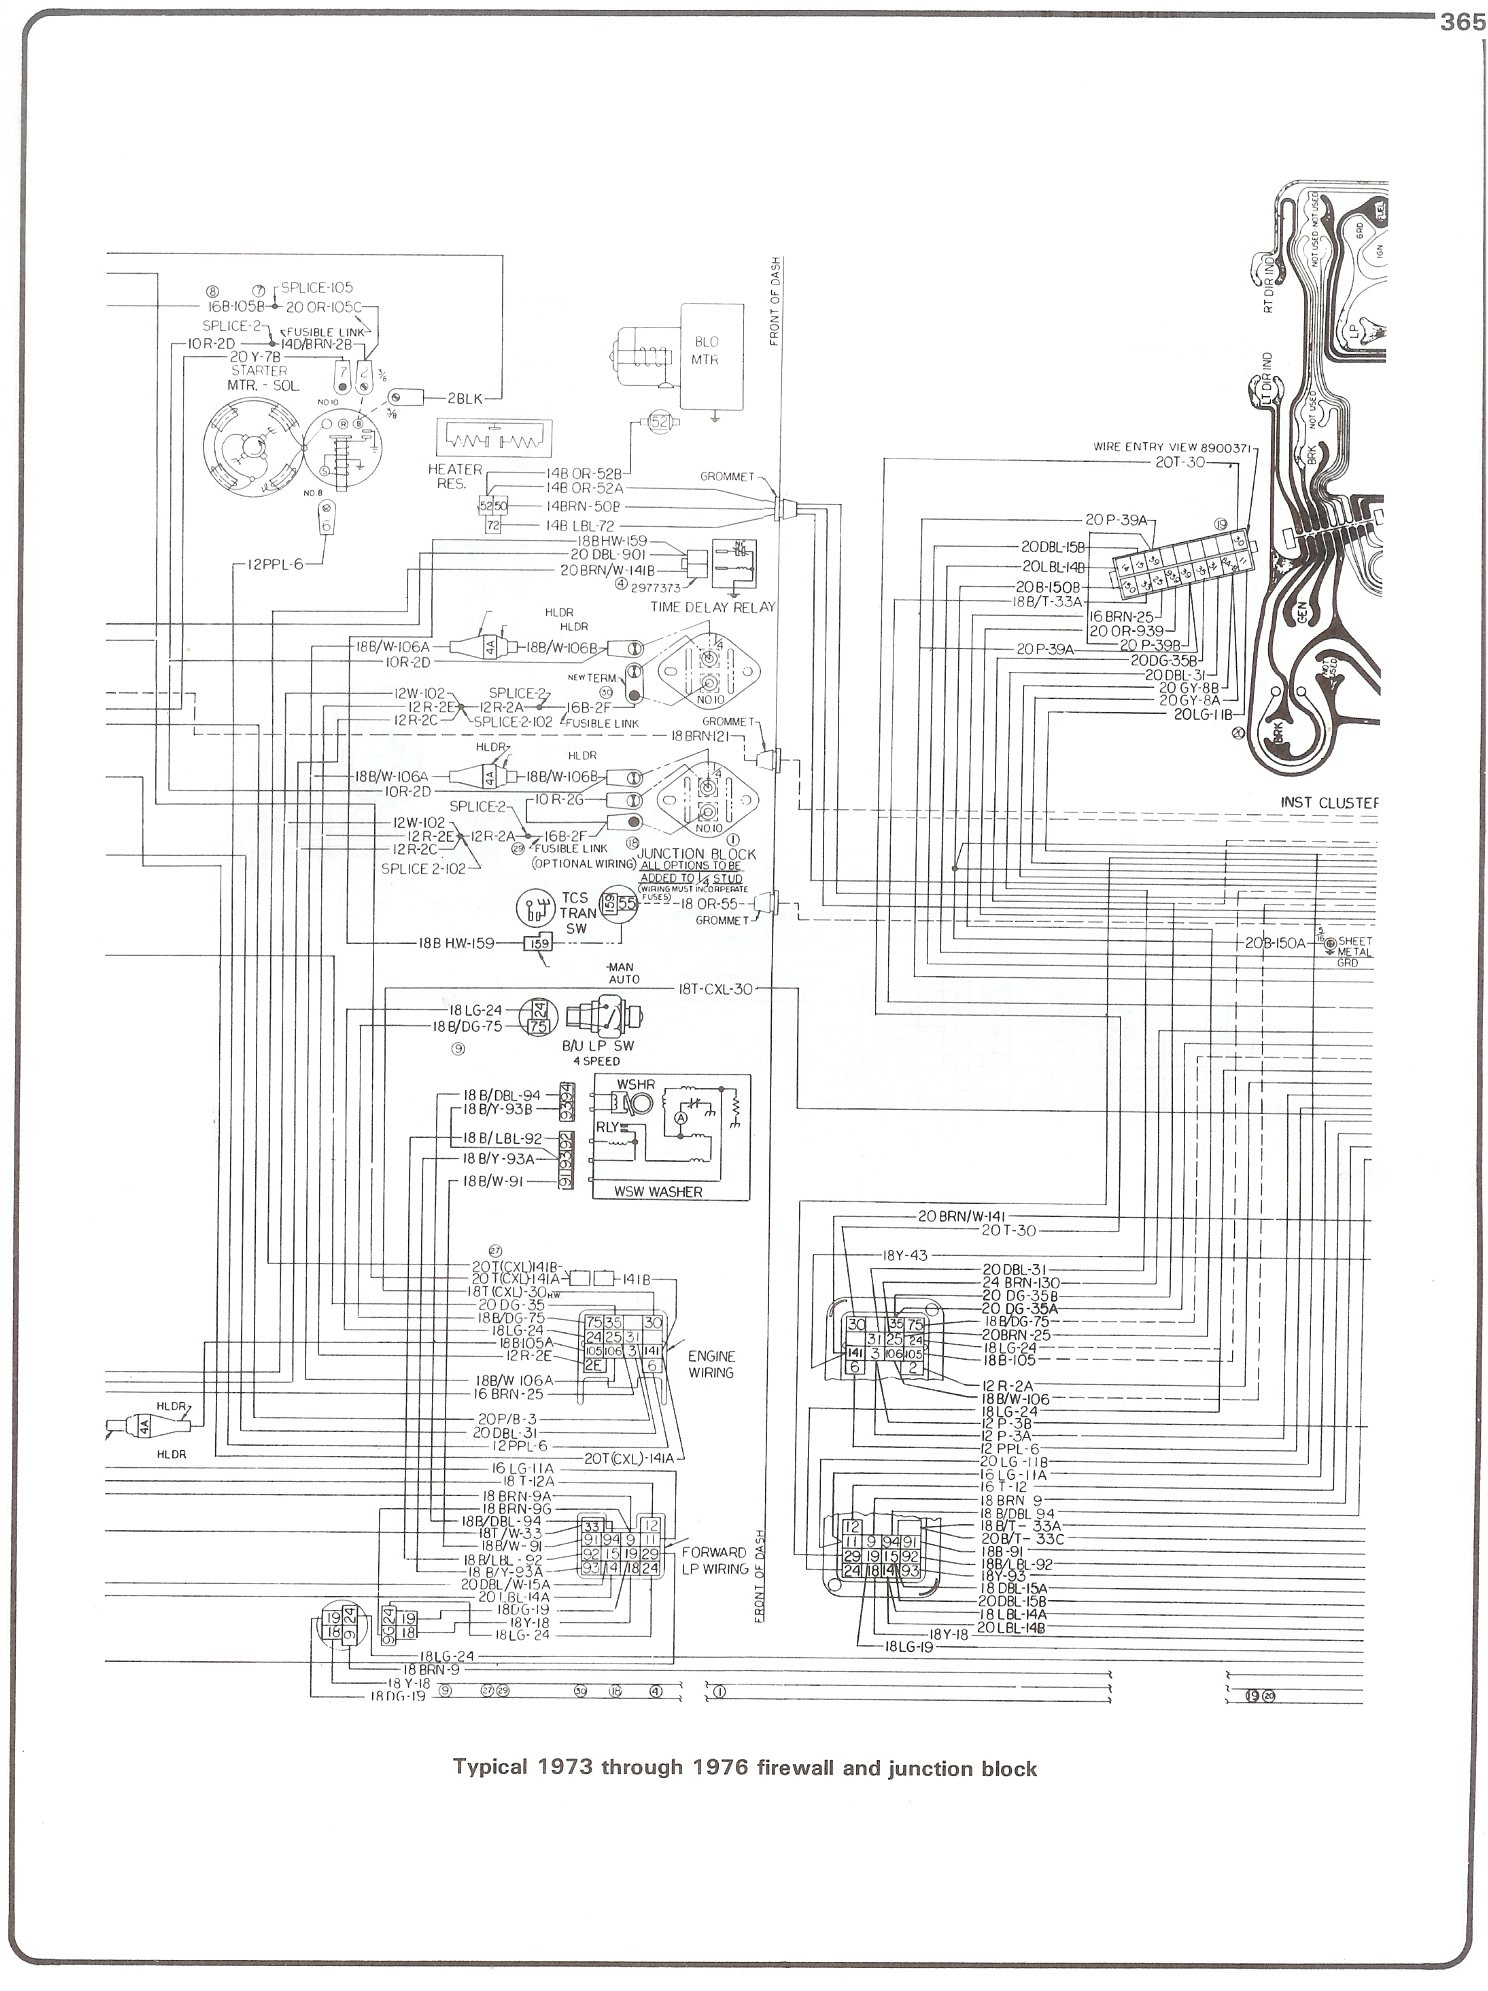 1987 Chevy Truck Wiring Diagram Image Details - WIRE Center •